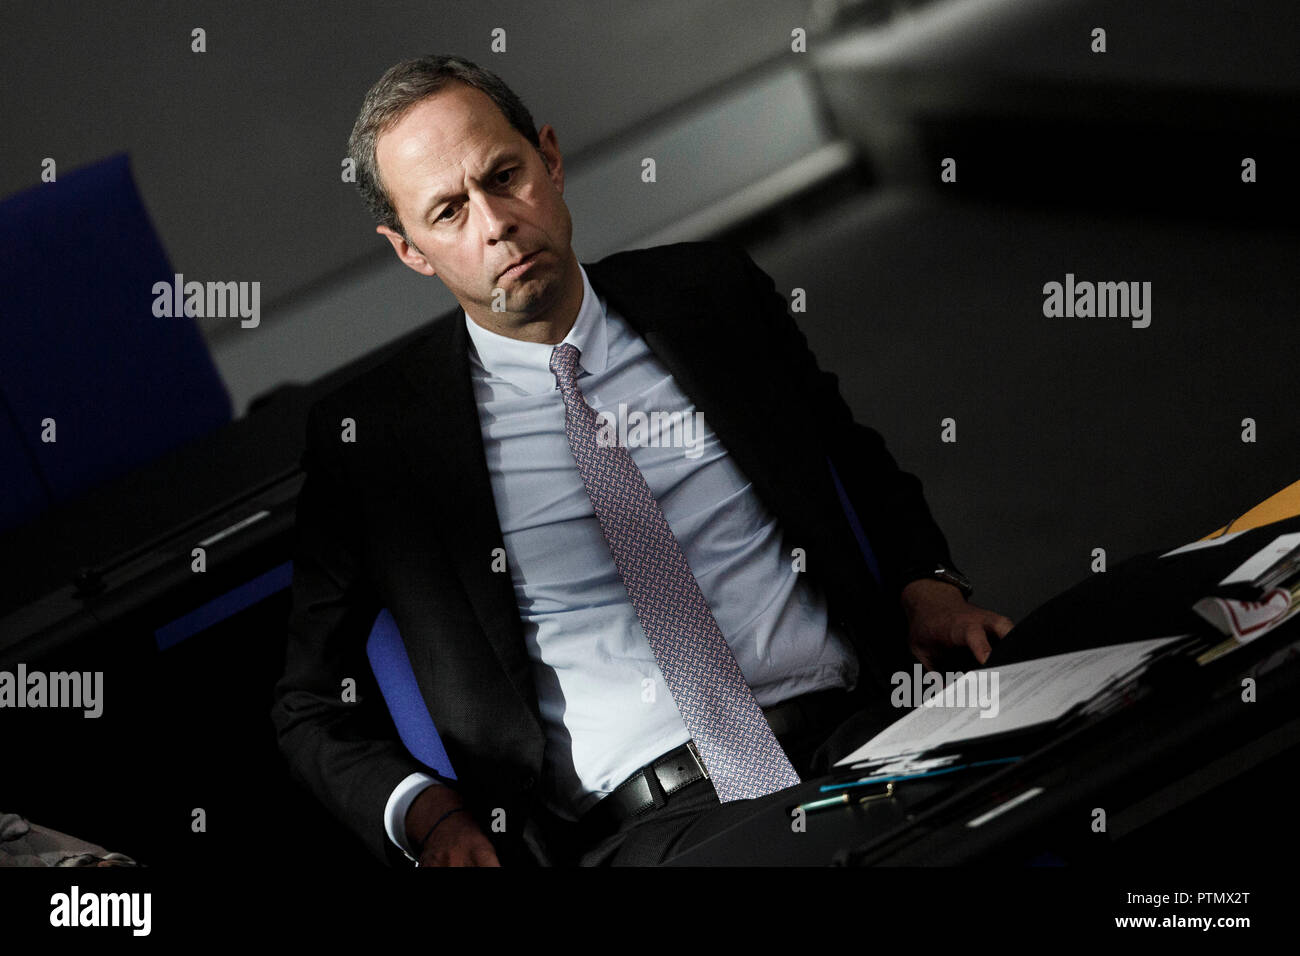 10 October 2018, Berlin: 10 October 2018, Germany, Berlin: Minister of State Hendrik Hoppenstedt takes part in the 54th session of the German Bundestag during a question time to the federal government. Photo: Carsten Koall/dpa - Stock Image